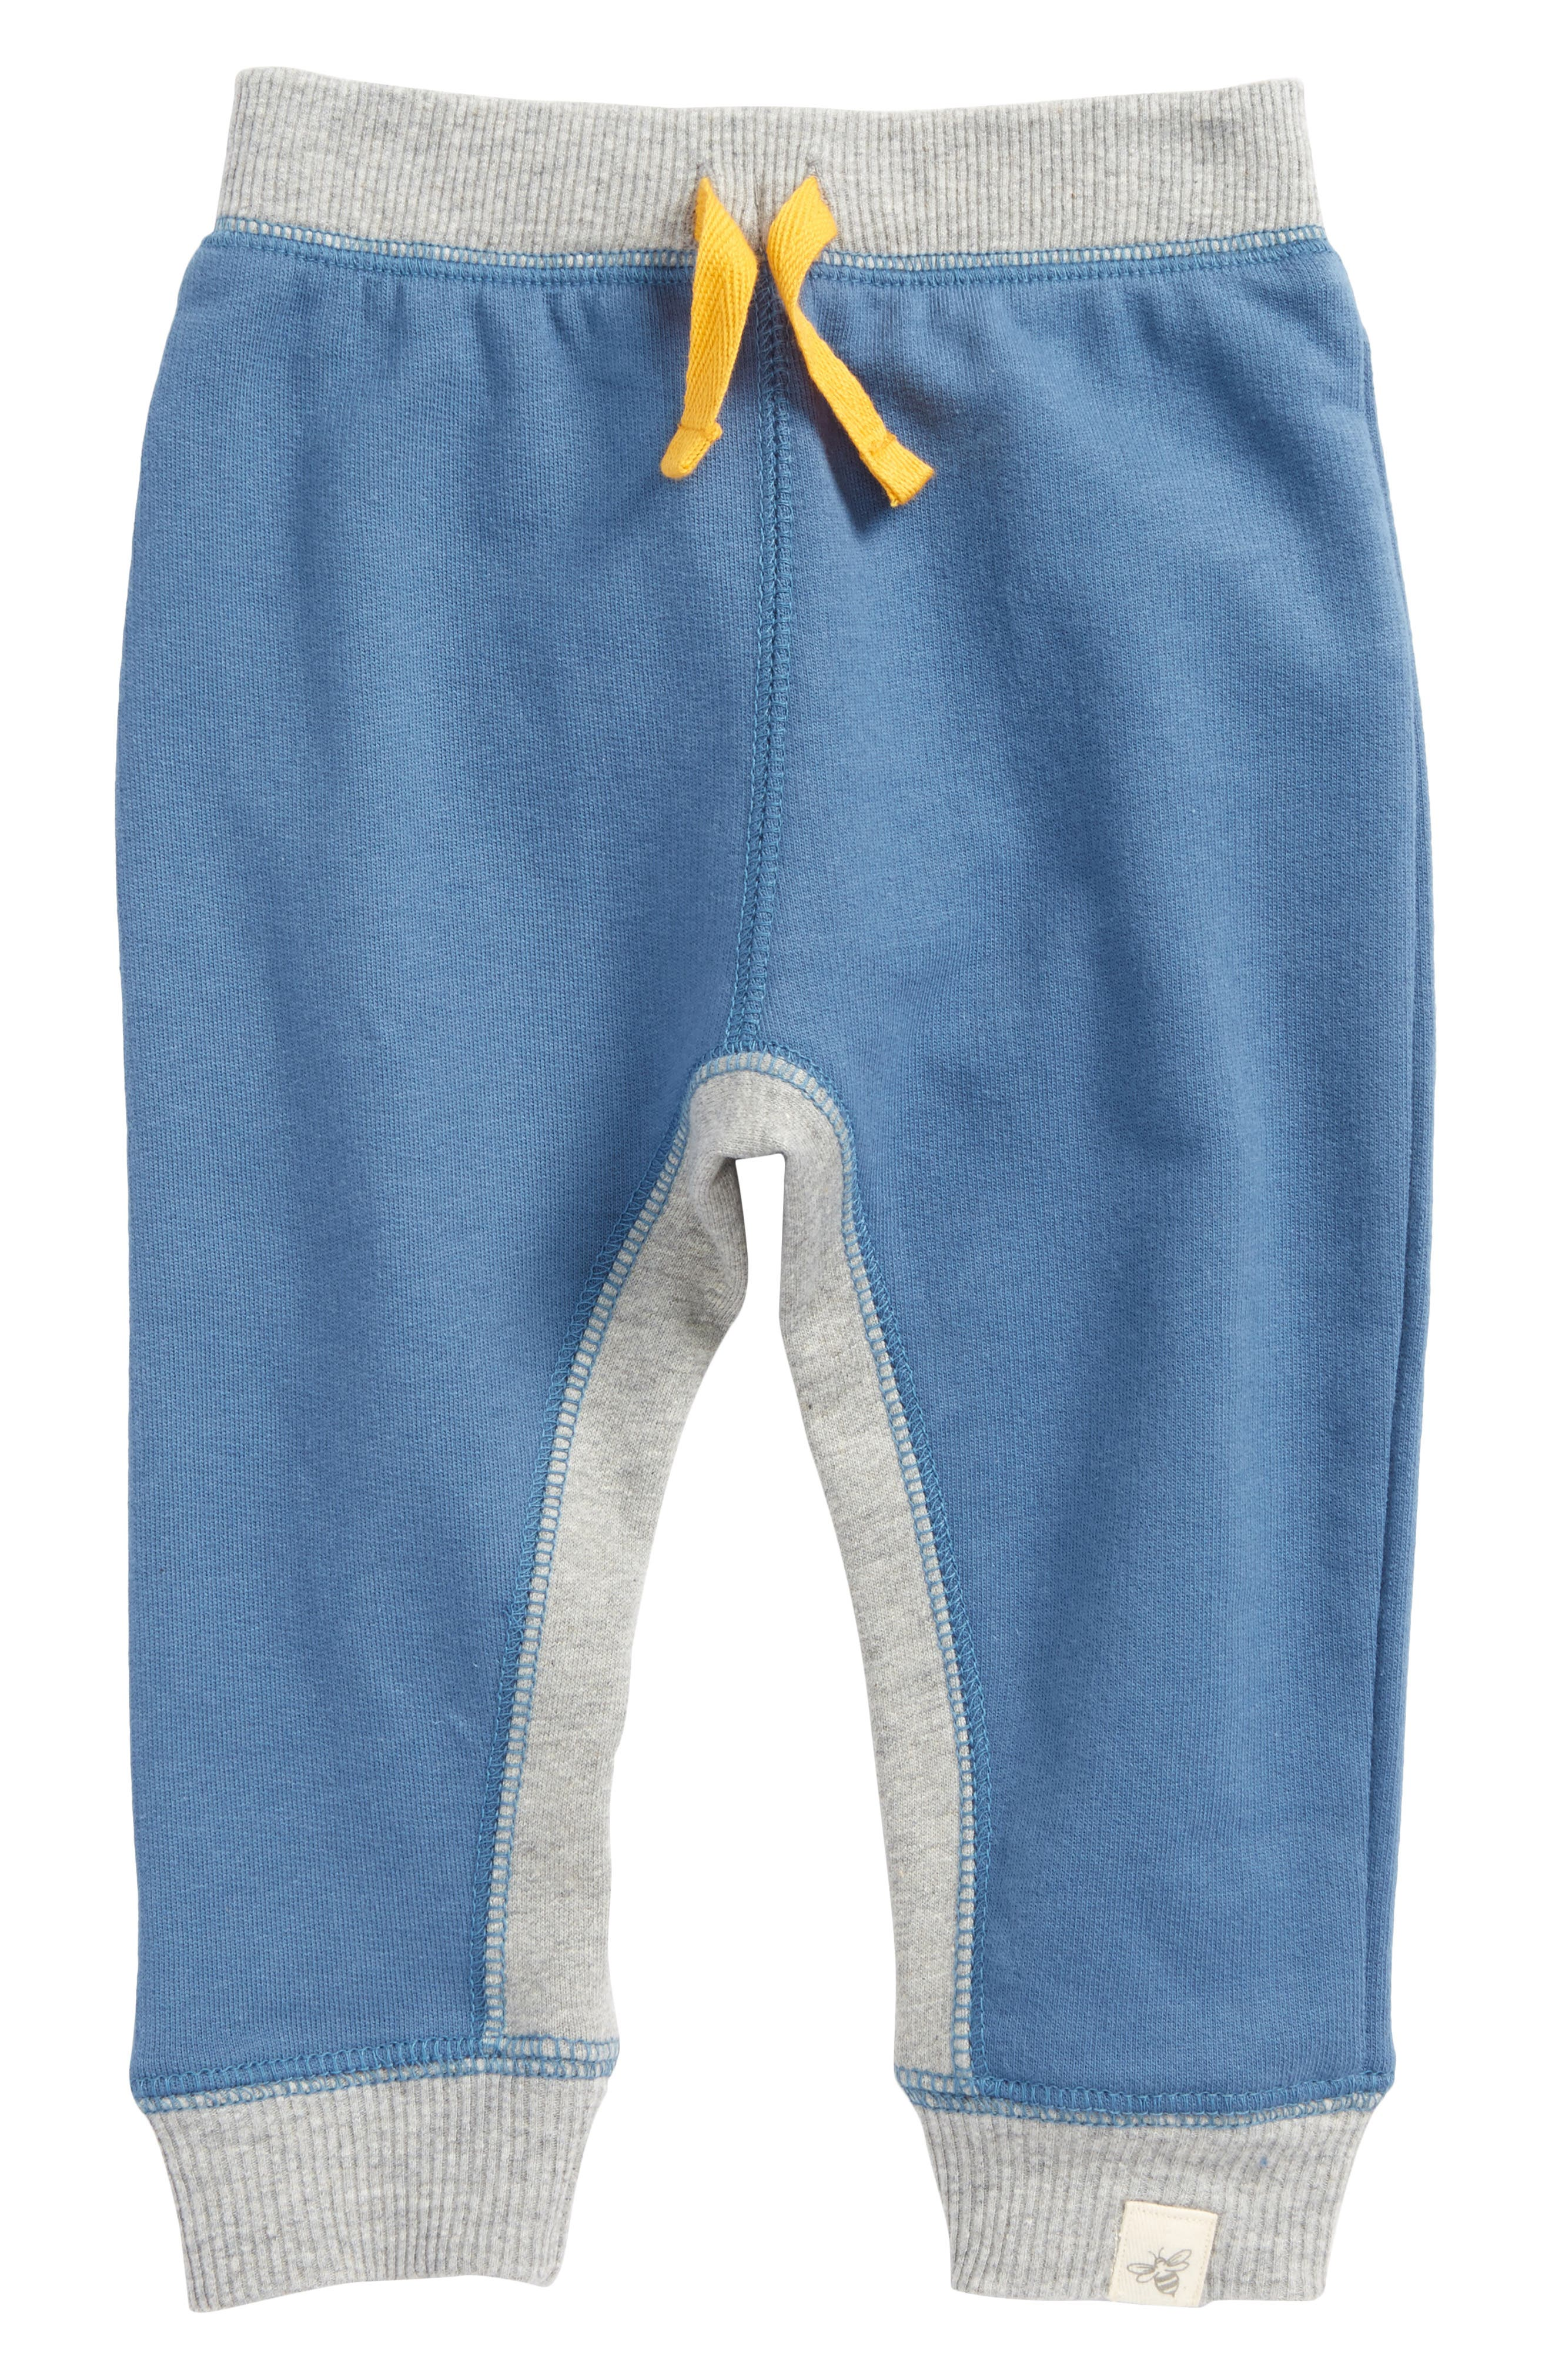 Burt's Bees Baby Organic Cotton French Terry Pants (Baby Boys)